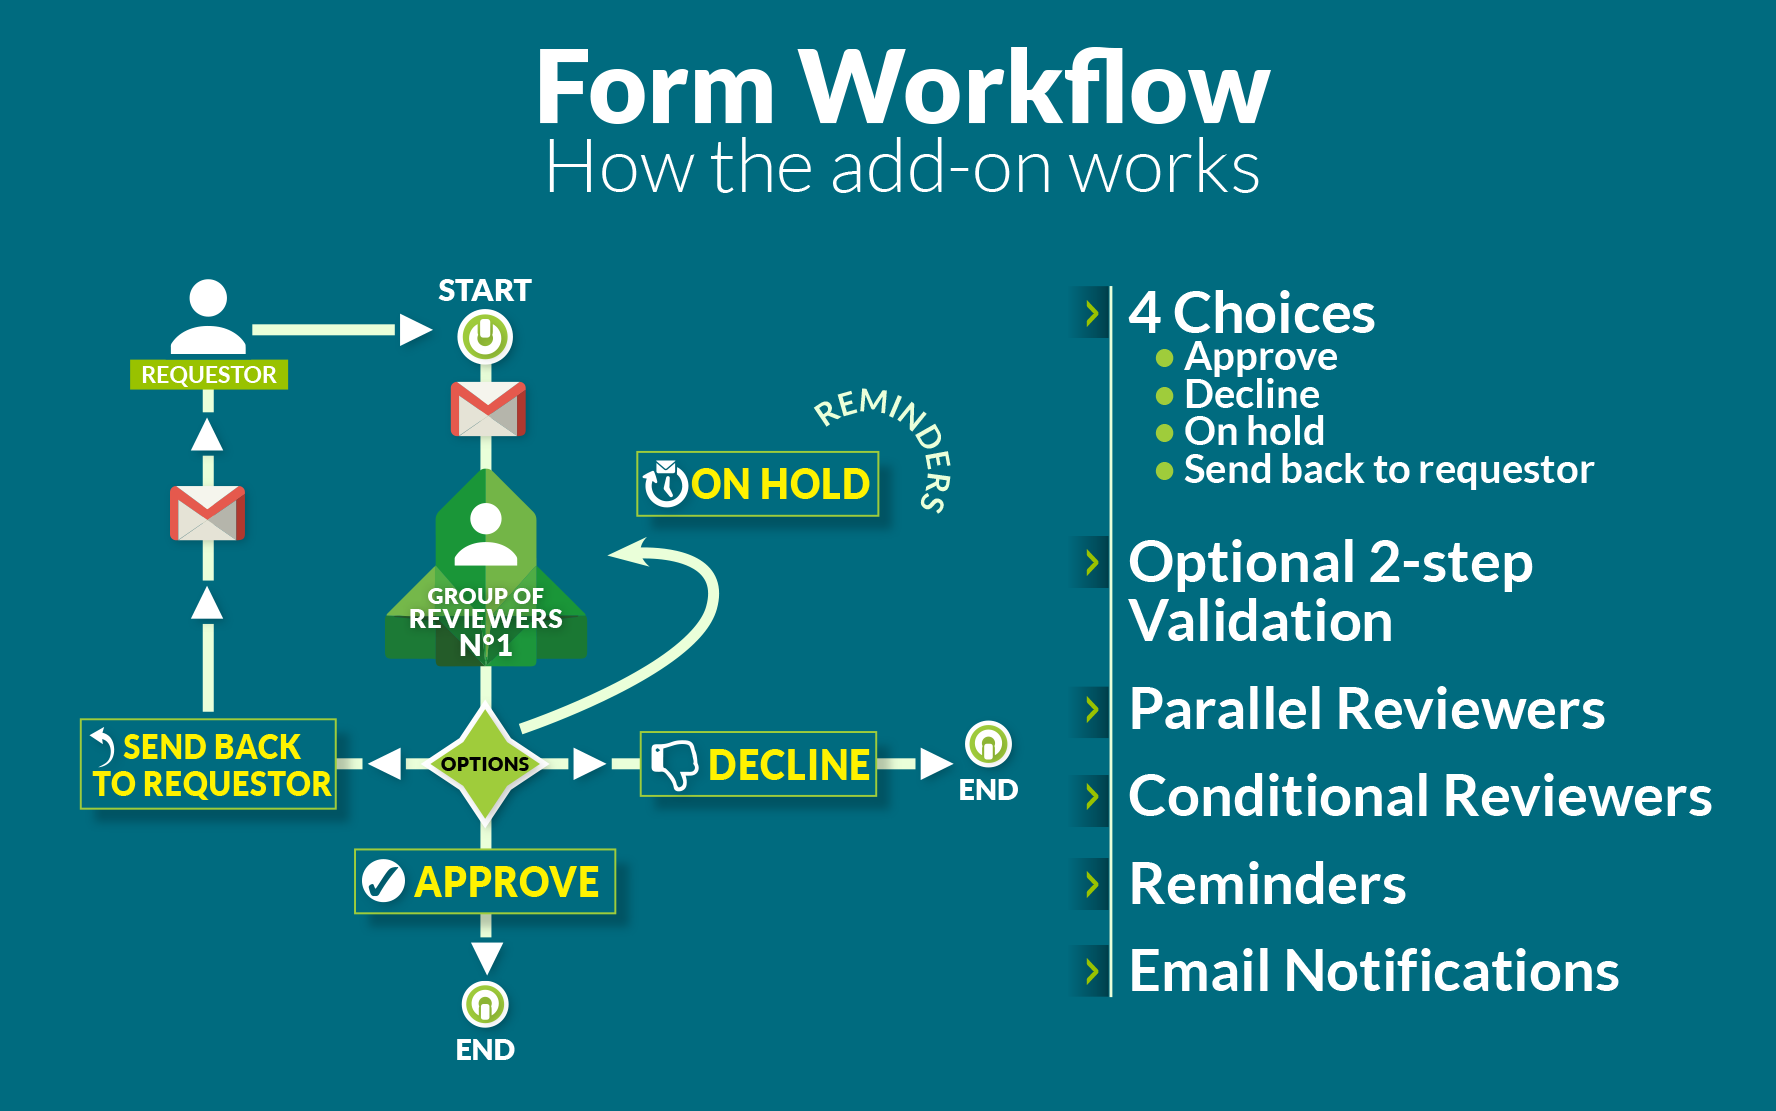 Form Workflow just got better